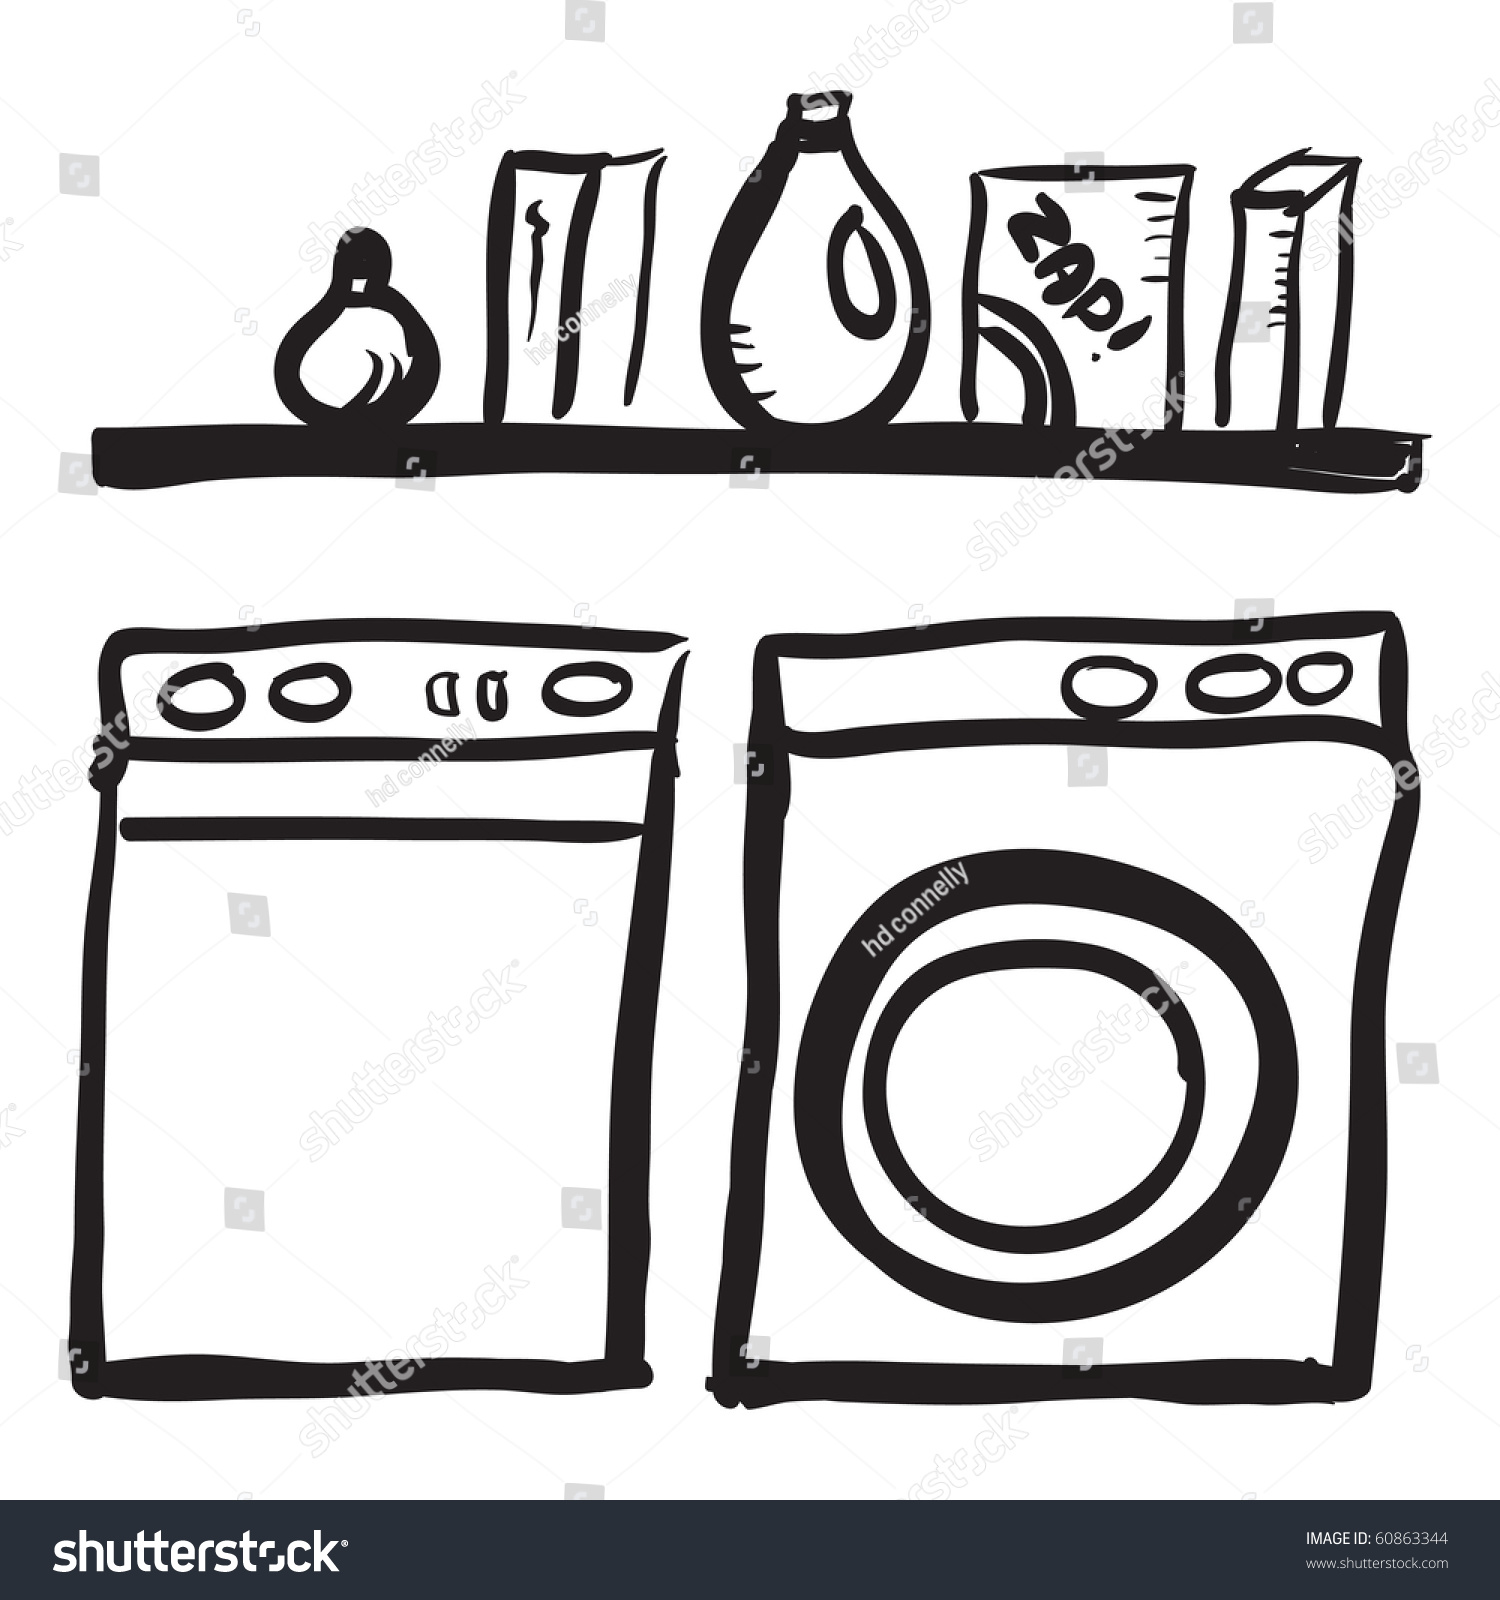 Laundry Clip Art Black And White